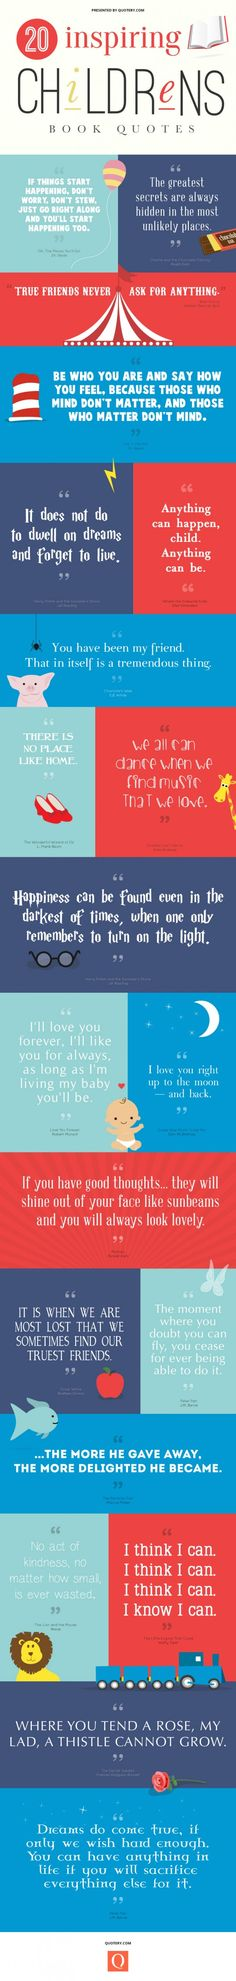 20 Inspiring Children's Book Quotes Infographic